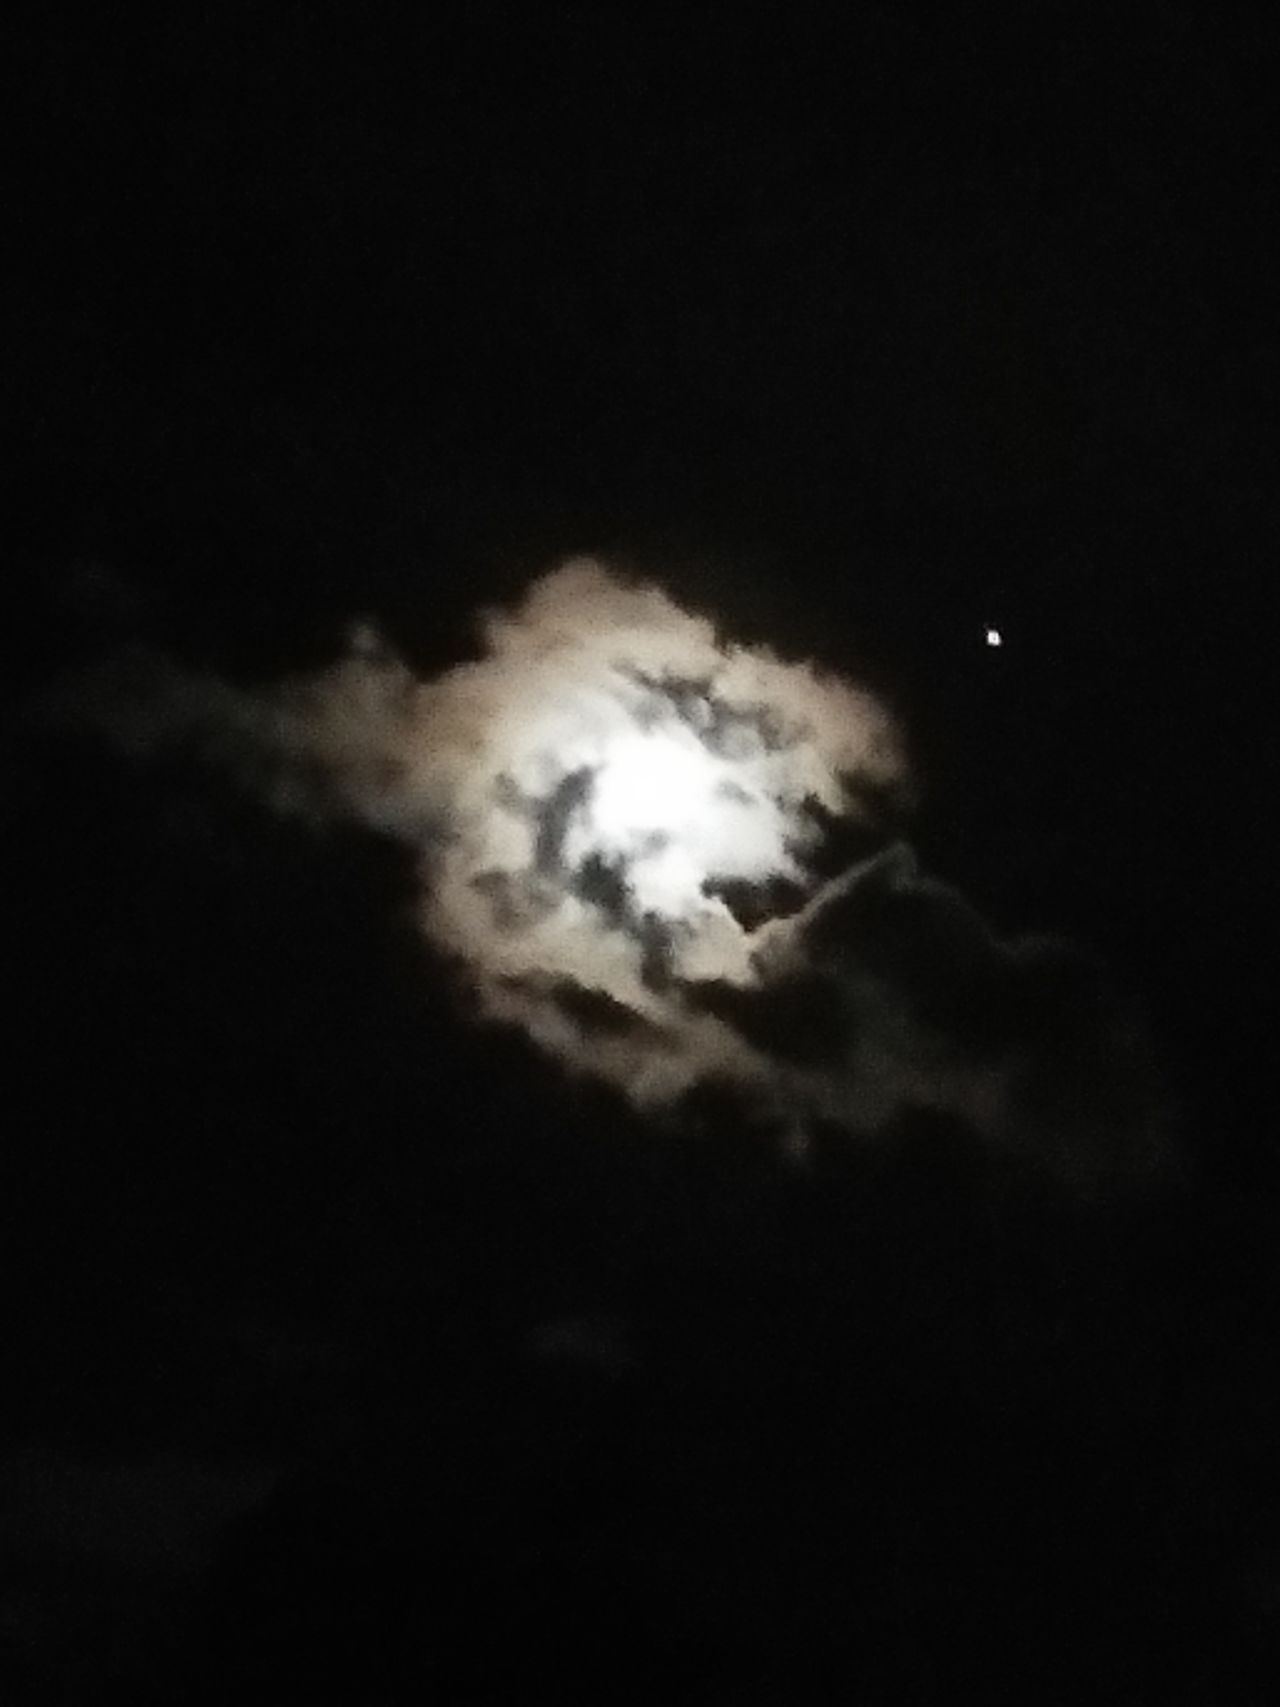 Beauty In Nature Nature Night Moon Black Background Sky Cloud - Sky No People Half MoonAwesome_view Traveling Photography Picture Taken On The Way Picture Taken By Oppof1 Camera Moon Behind Cloudes Natural Phenomenon Dark